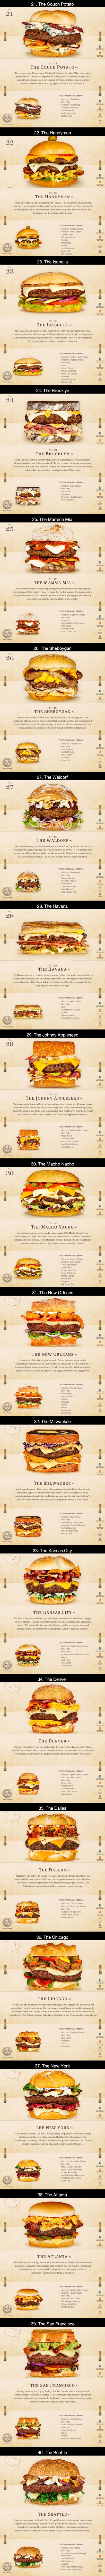 40 Glorious Burger Combinations Part 2 - 9GAG